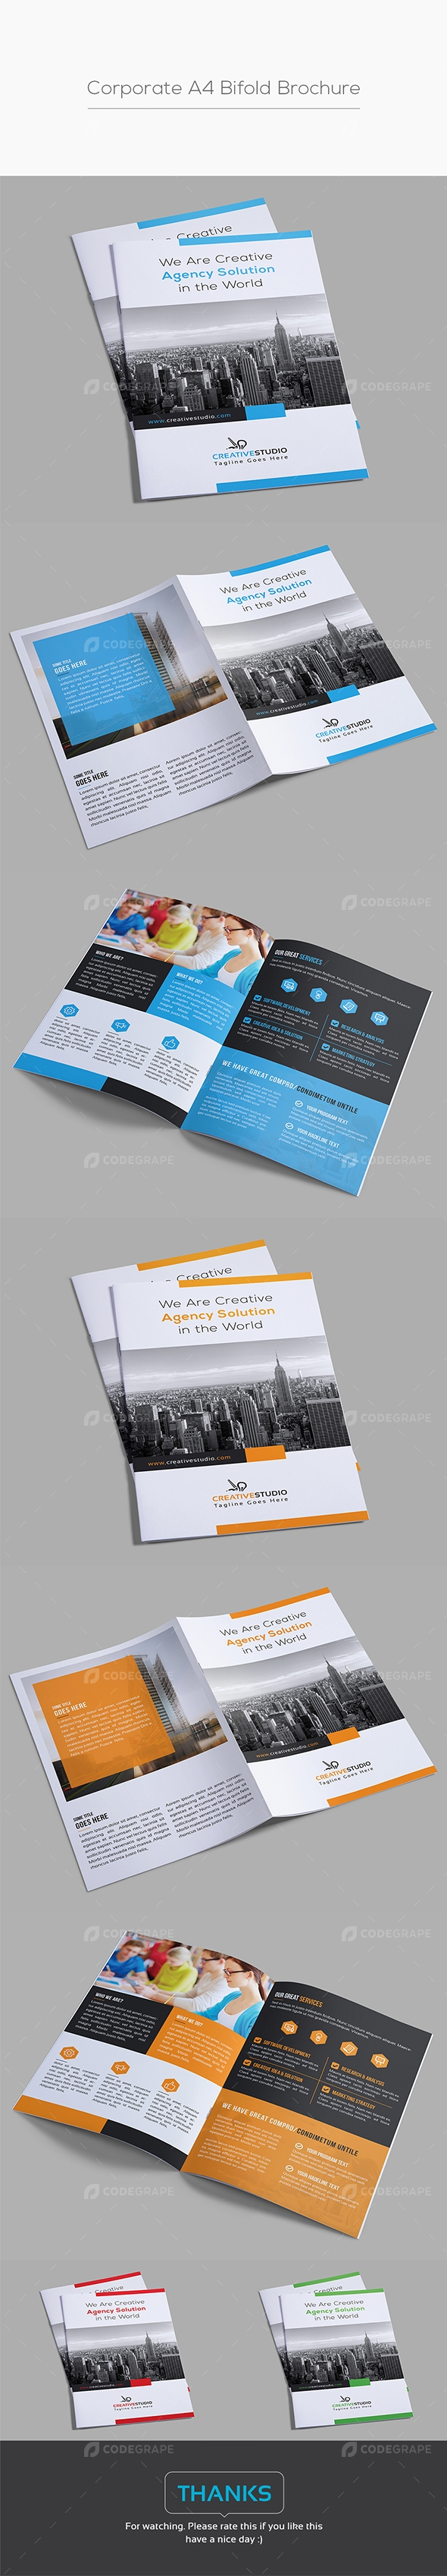 Corporate A4 Bifold Brochure